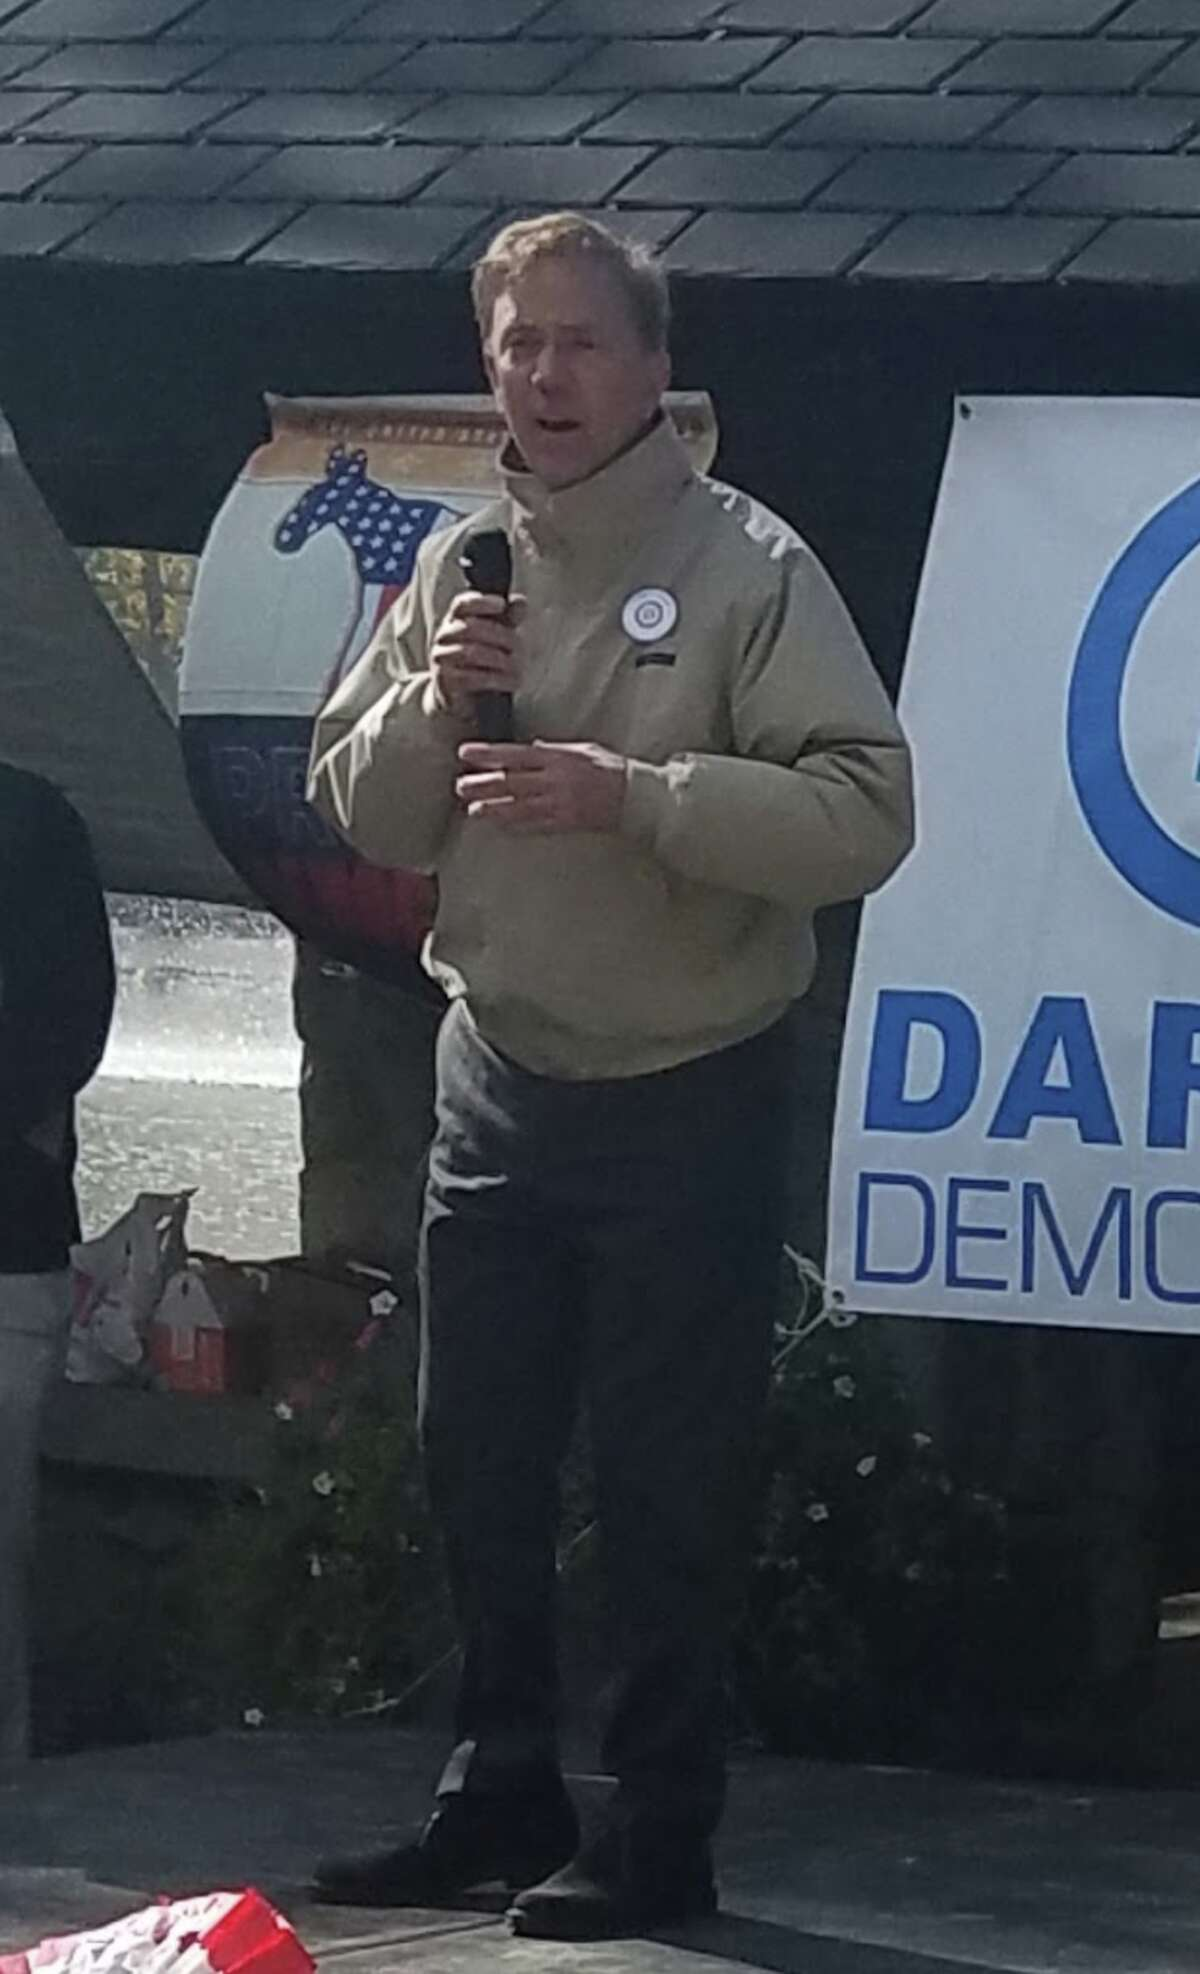 Ned Lamont, the Democratic candidate running for governor, at last Sunday's rally.